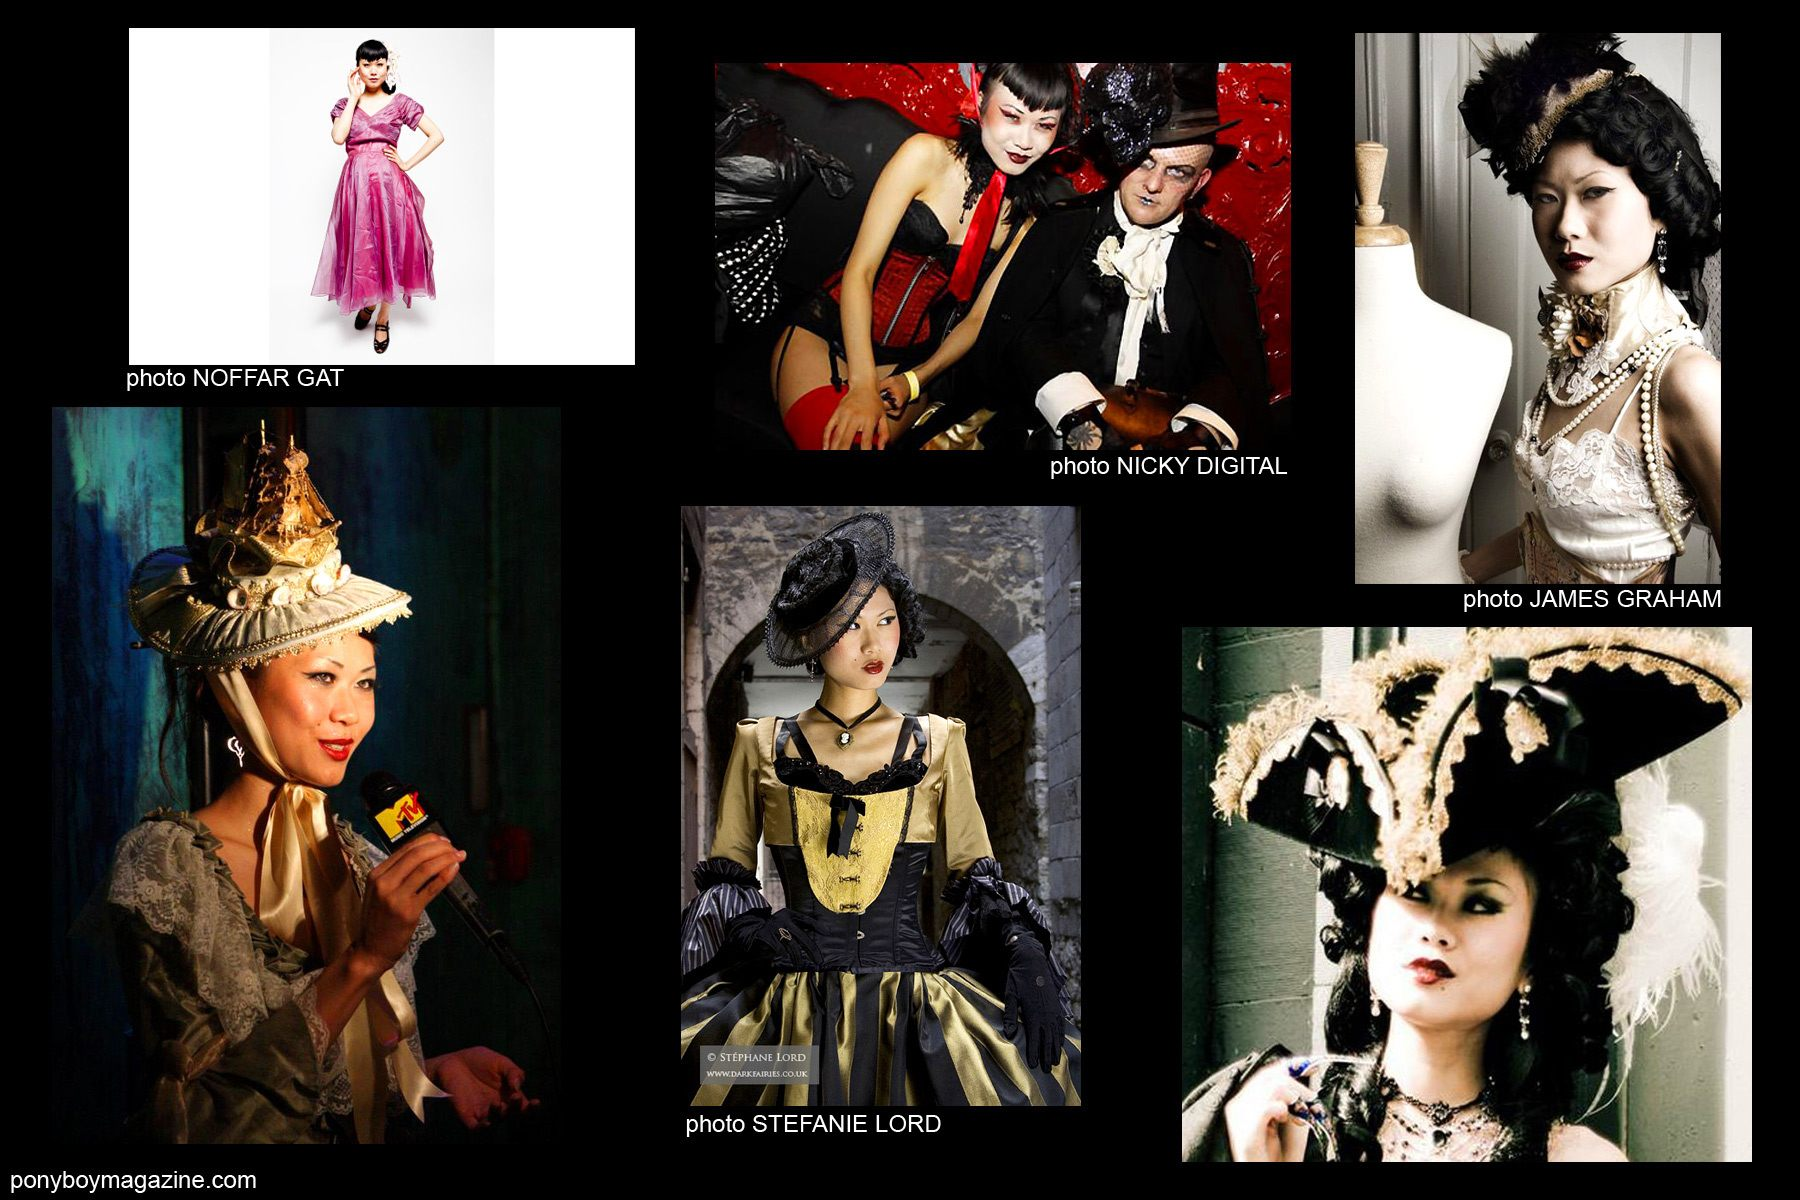 Collage of photographs of Shien Lee for Ponyboy Magazine.